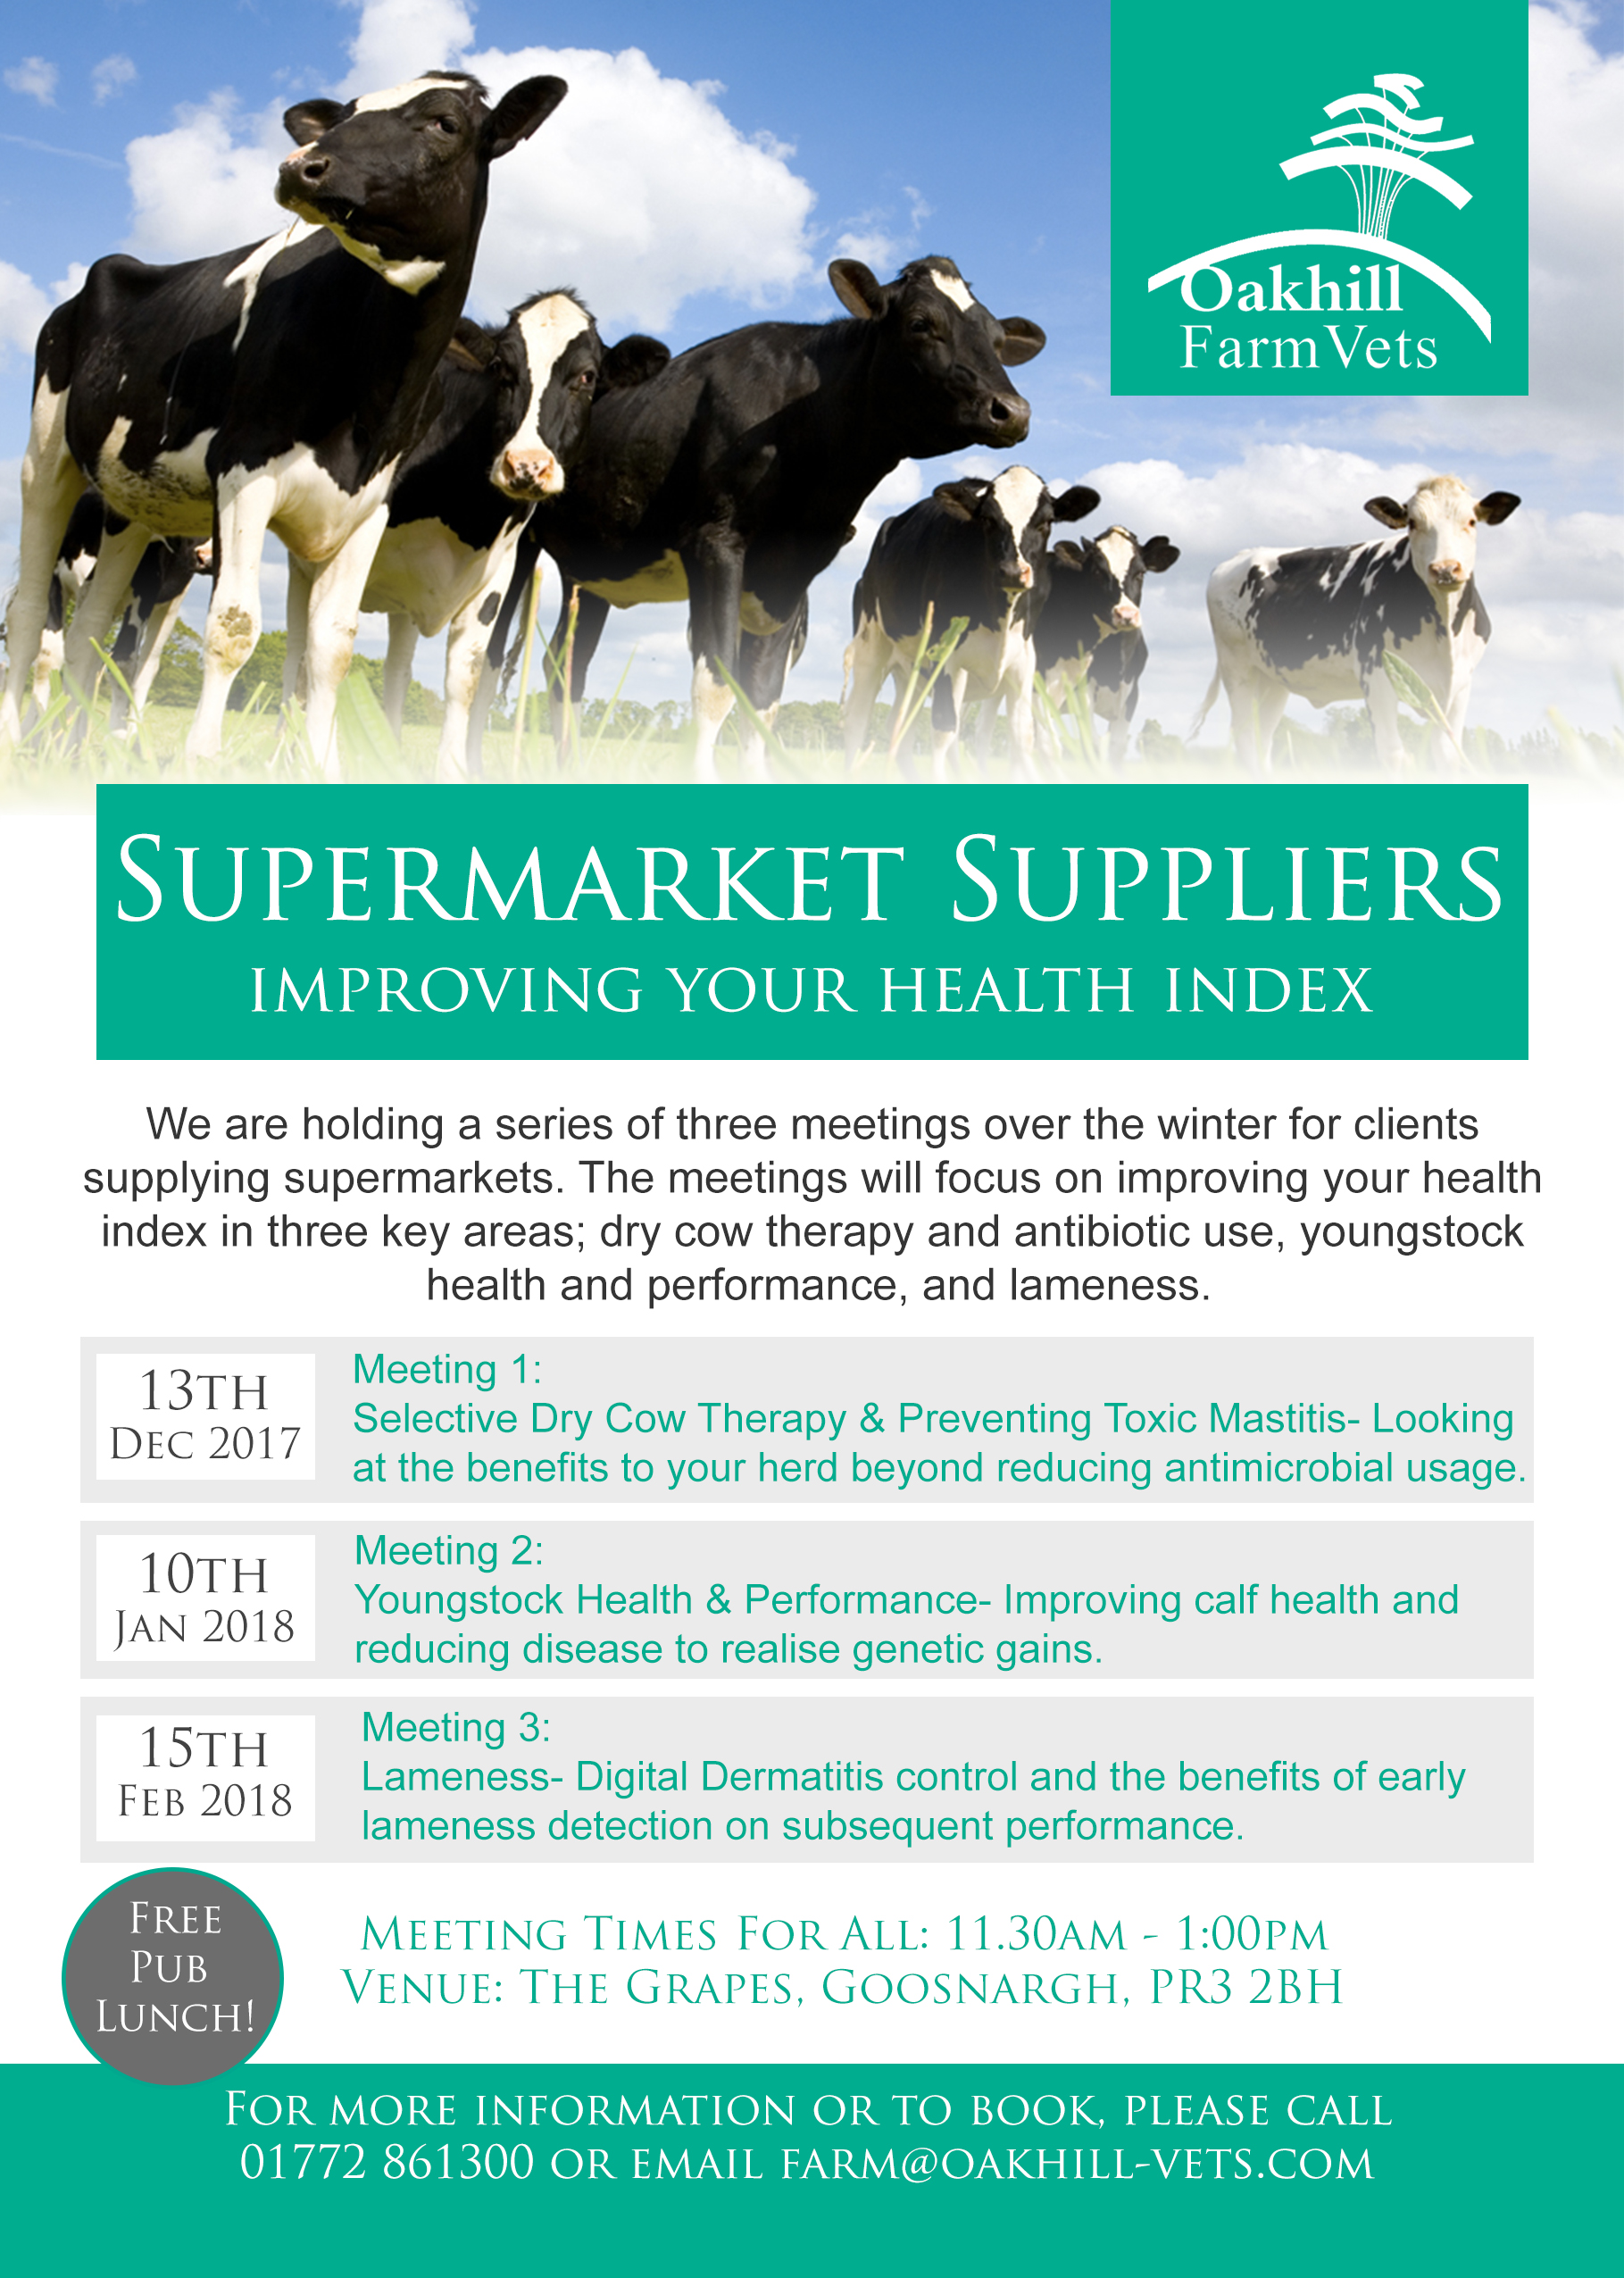 Supermarket Suppliers (Meeting 2) Youngstock Health & Performance